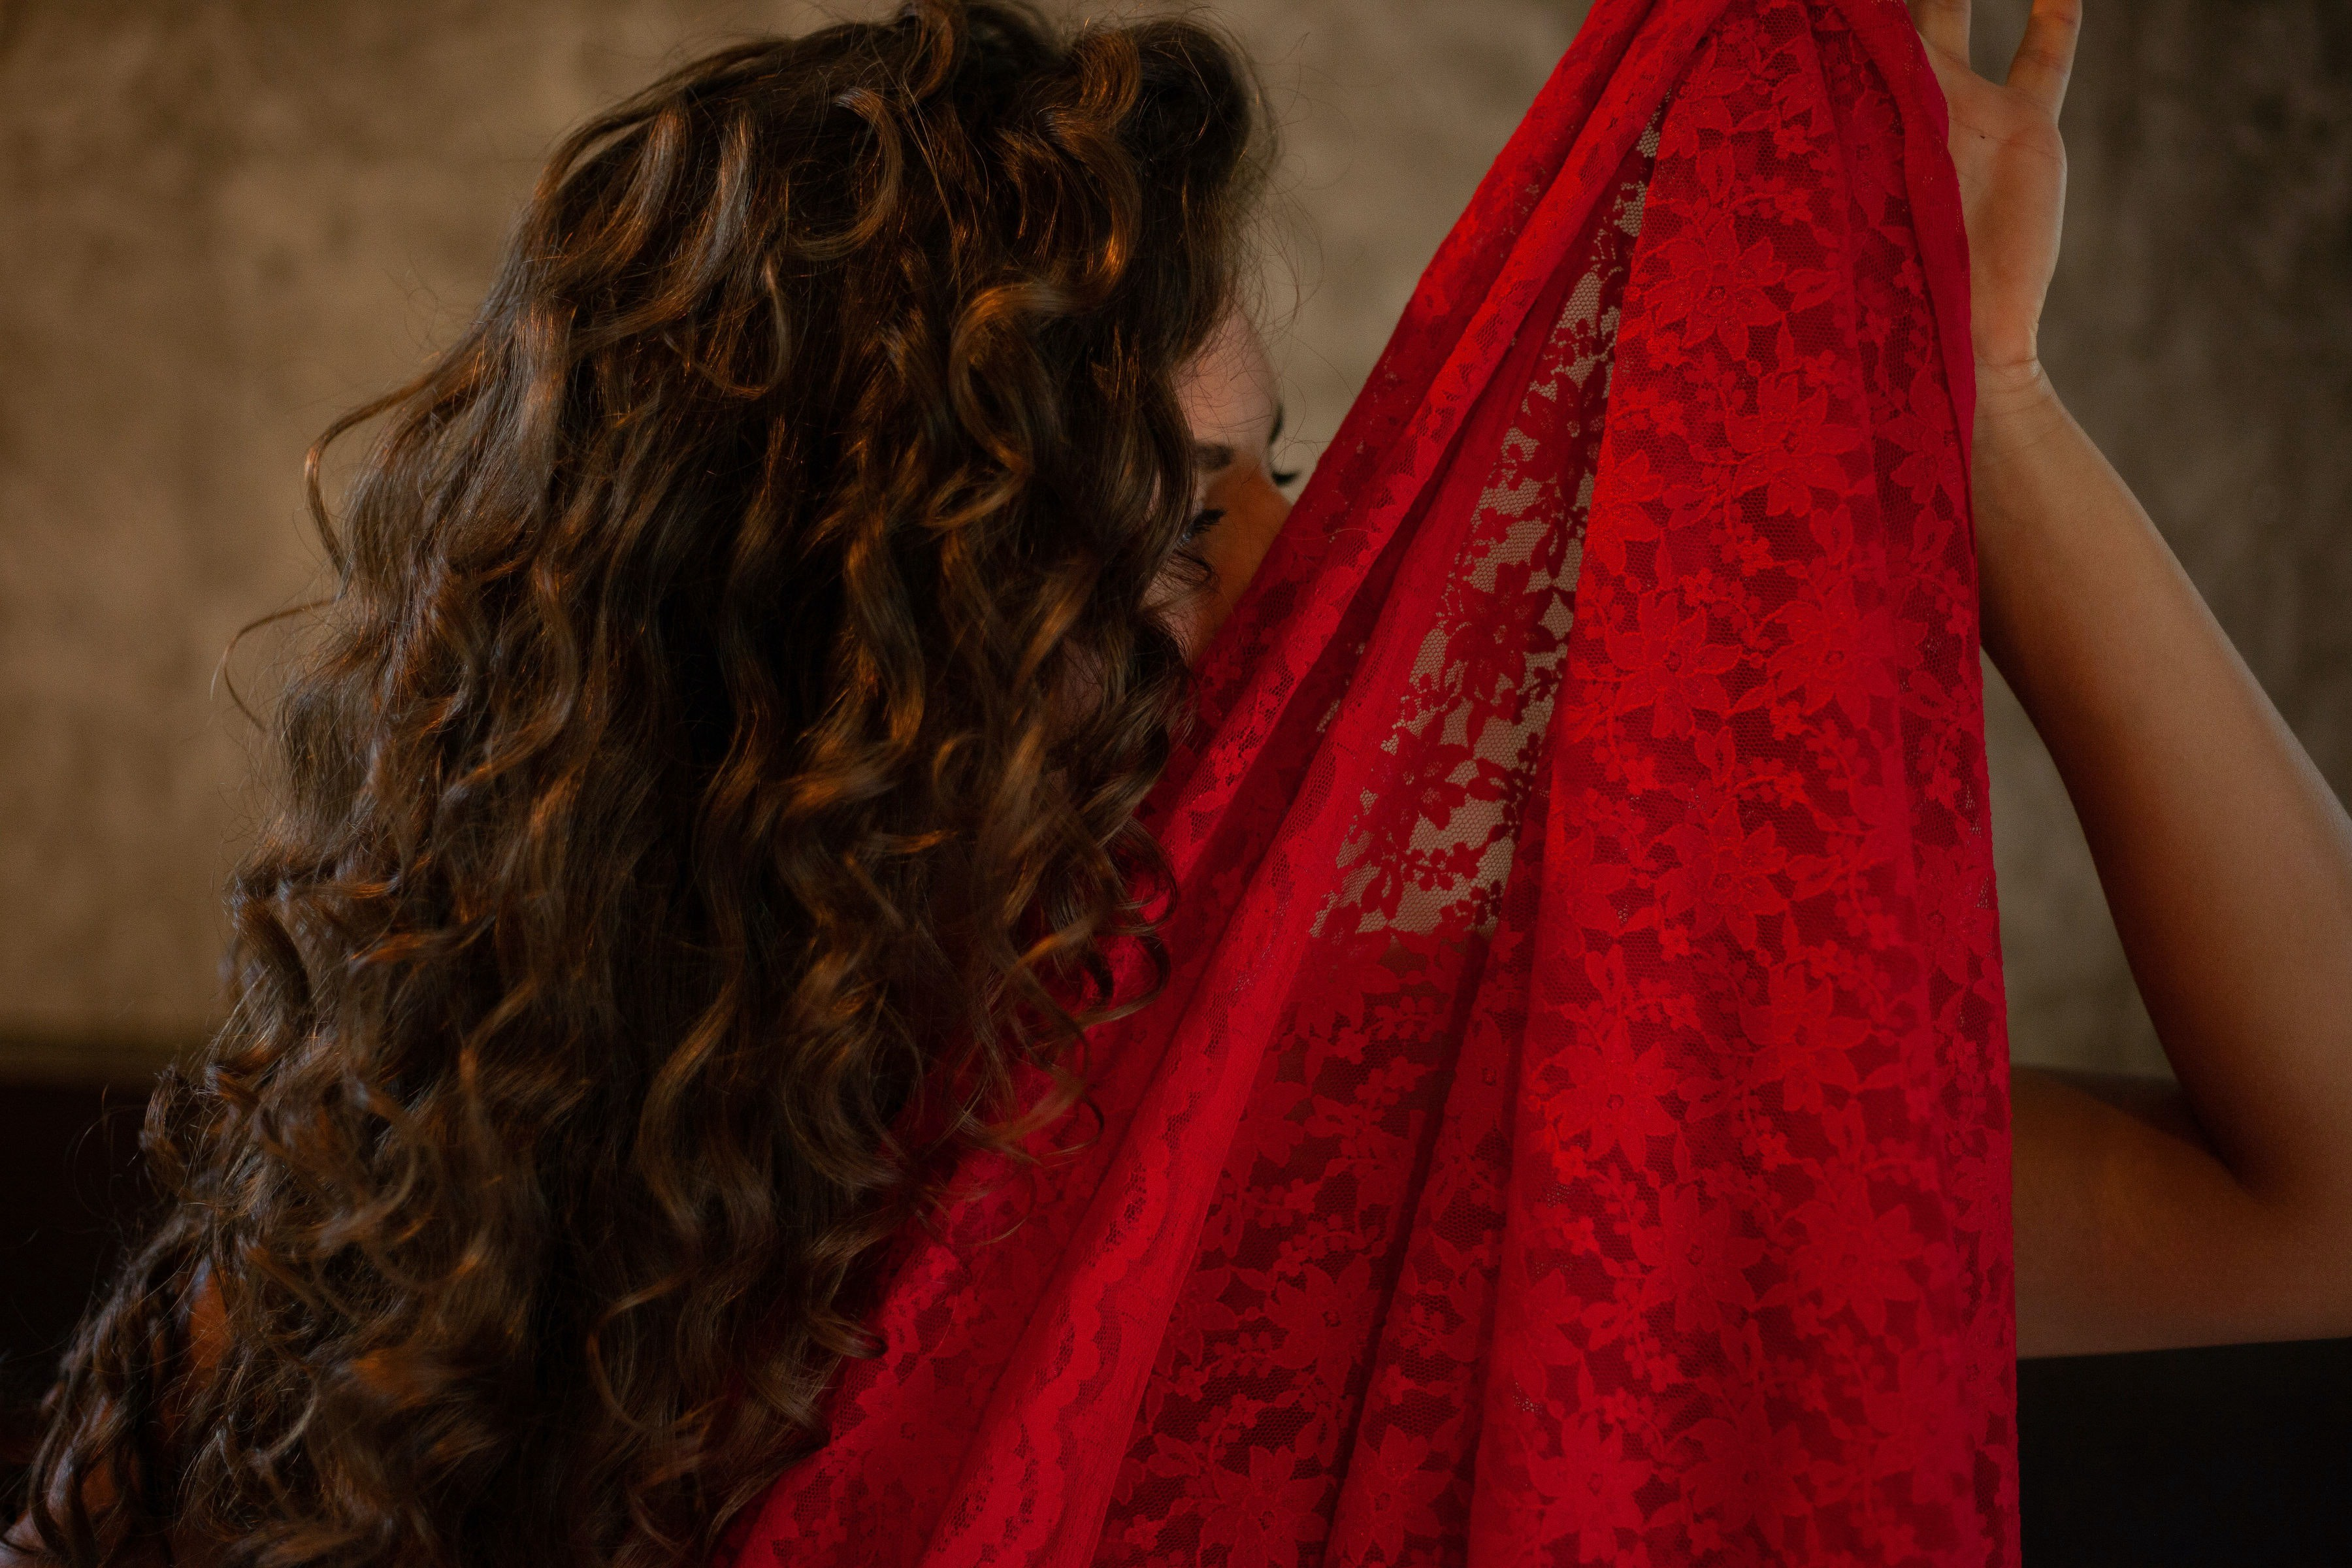 sensual woman holding up a red lace veil